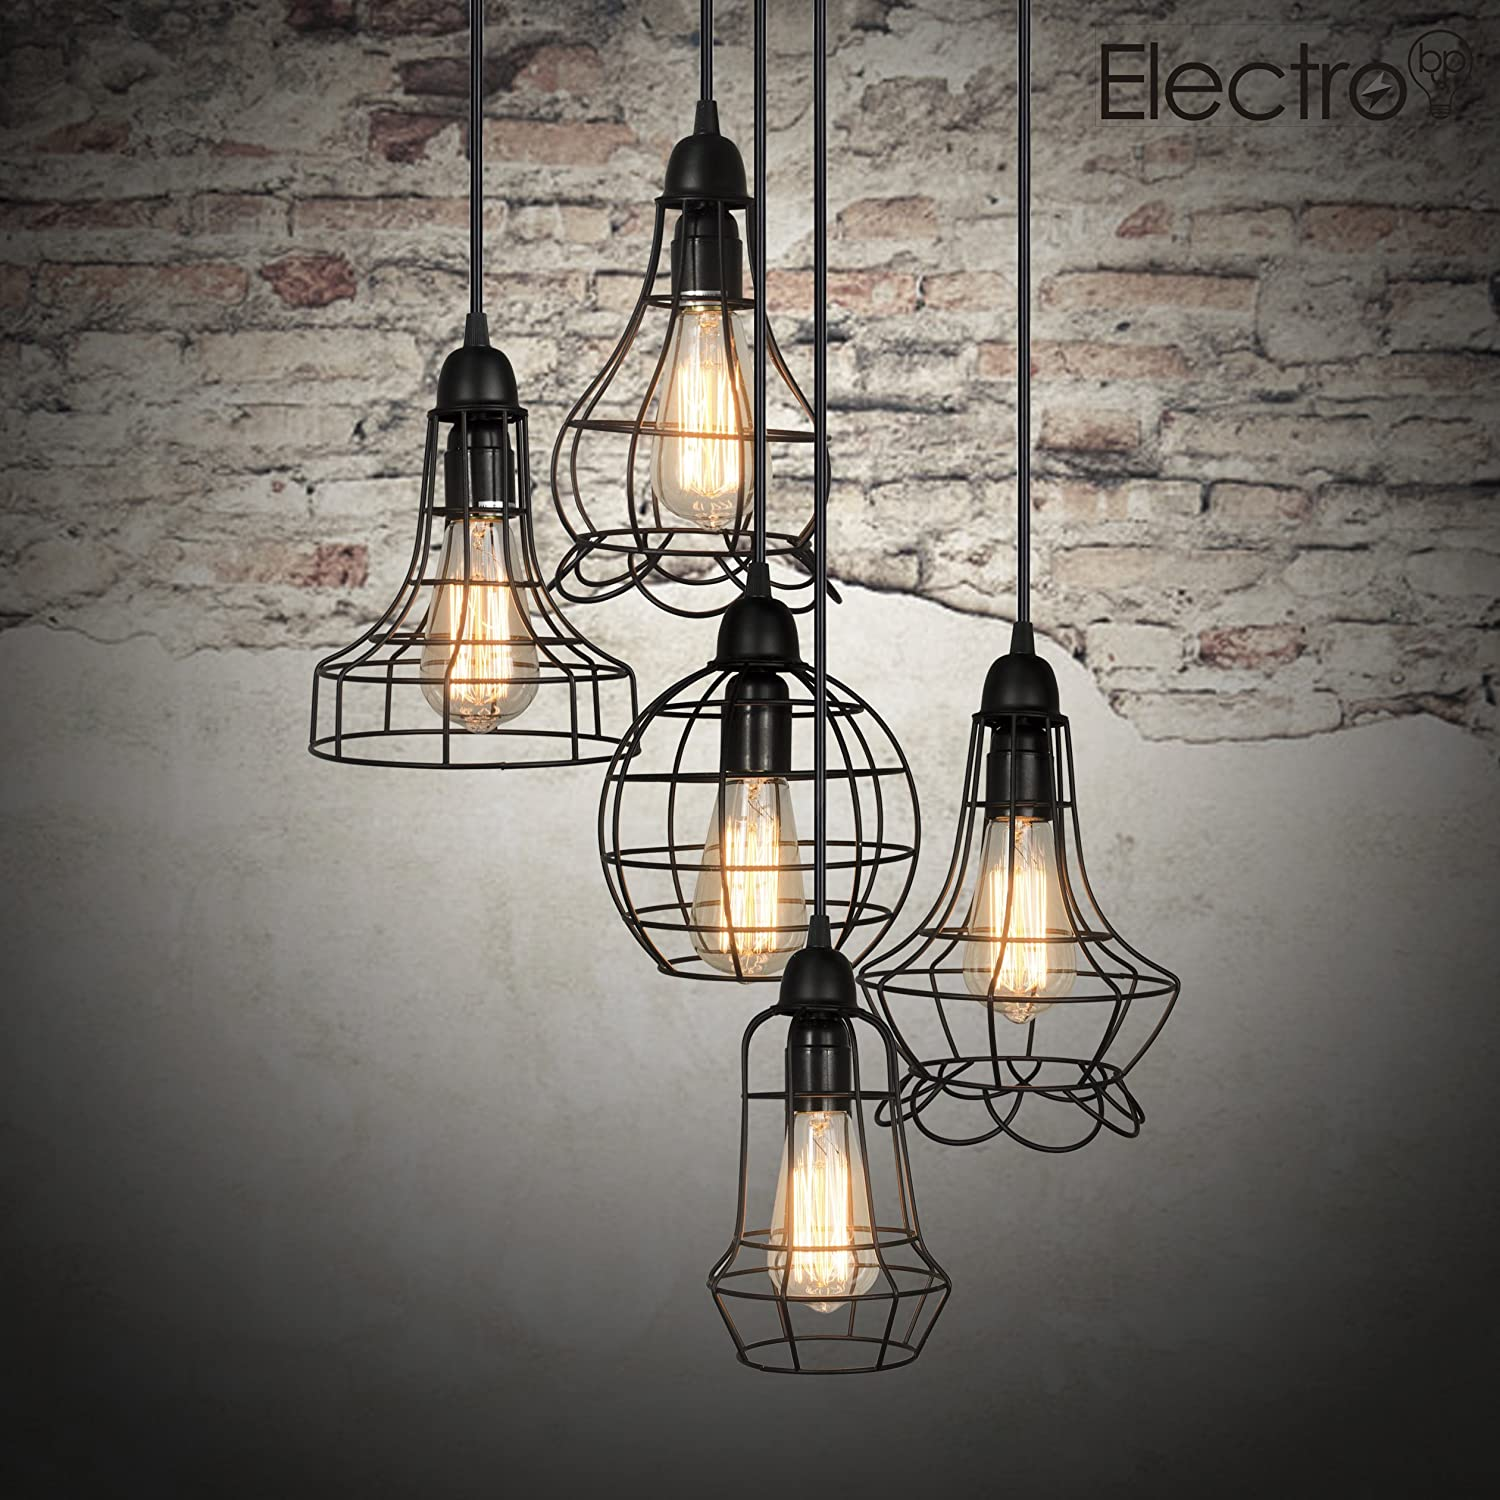 Fabulous Electro bp rustic Barn Metal Chandelier Max w with Light Black Finish Bulb Included